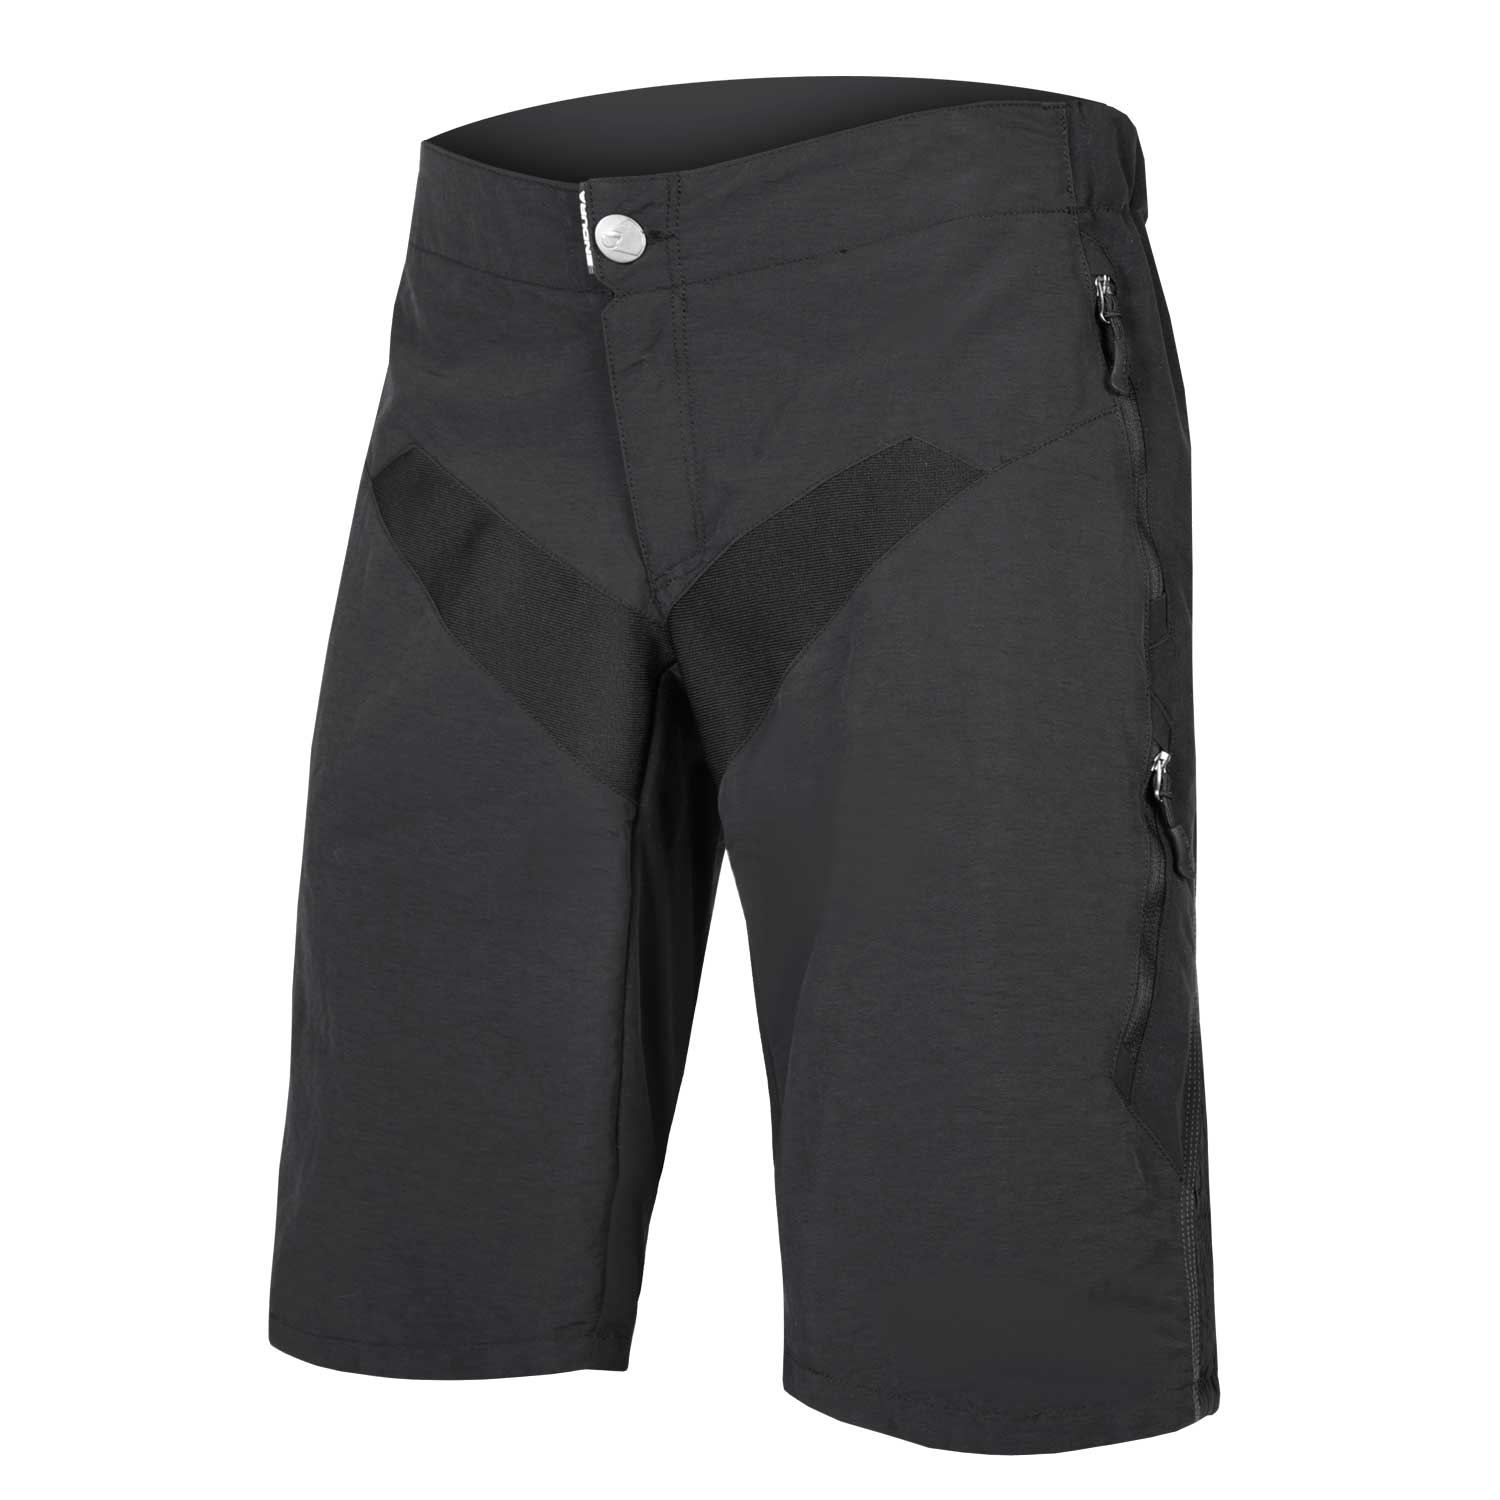 SingleTrack Short Black